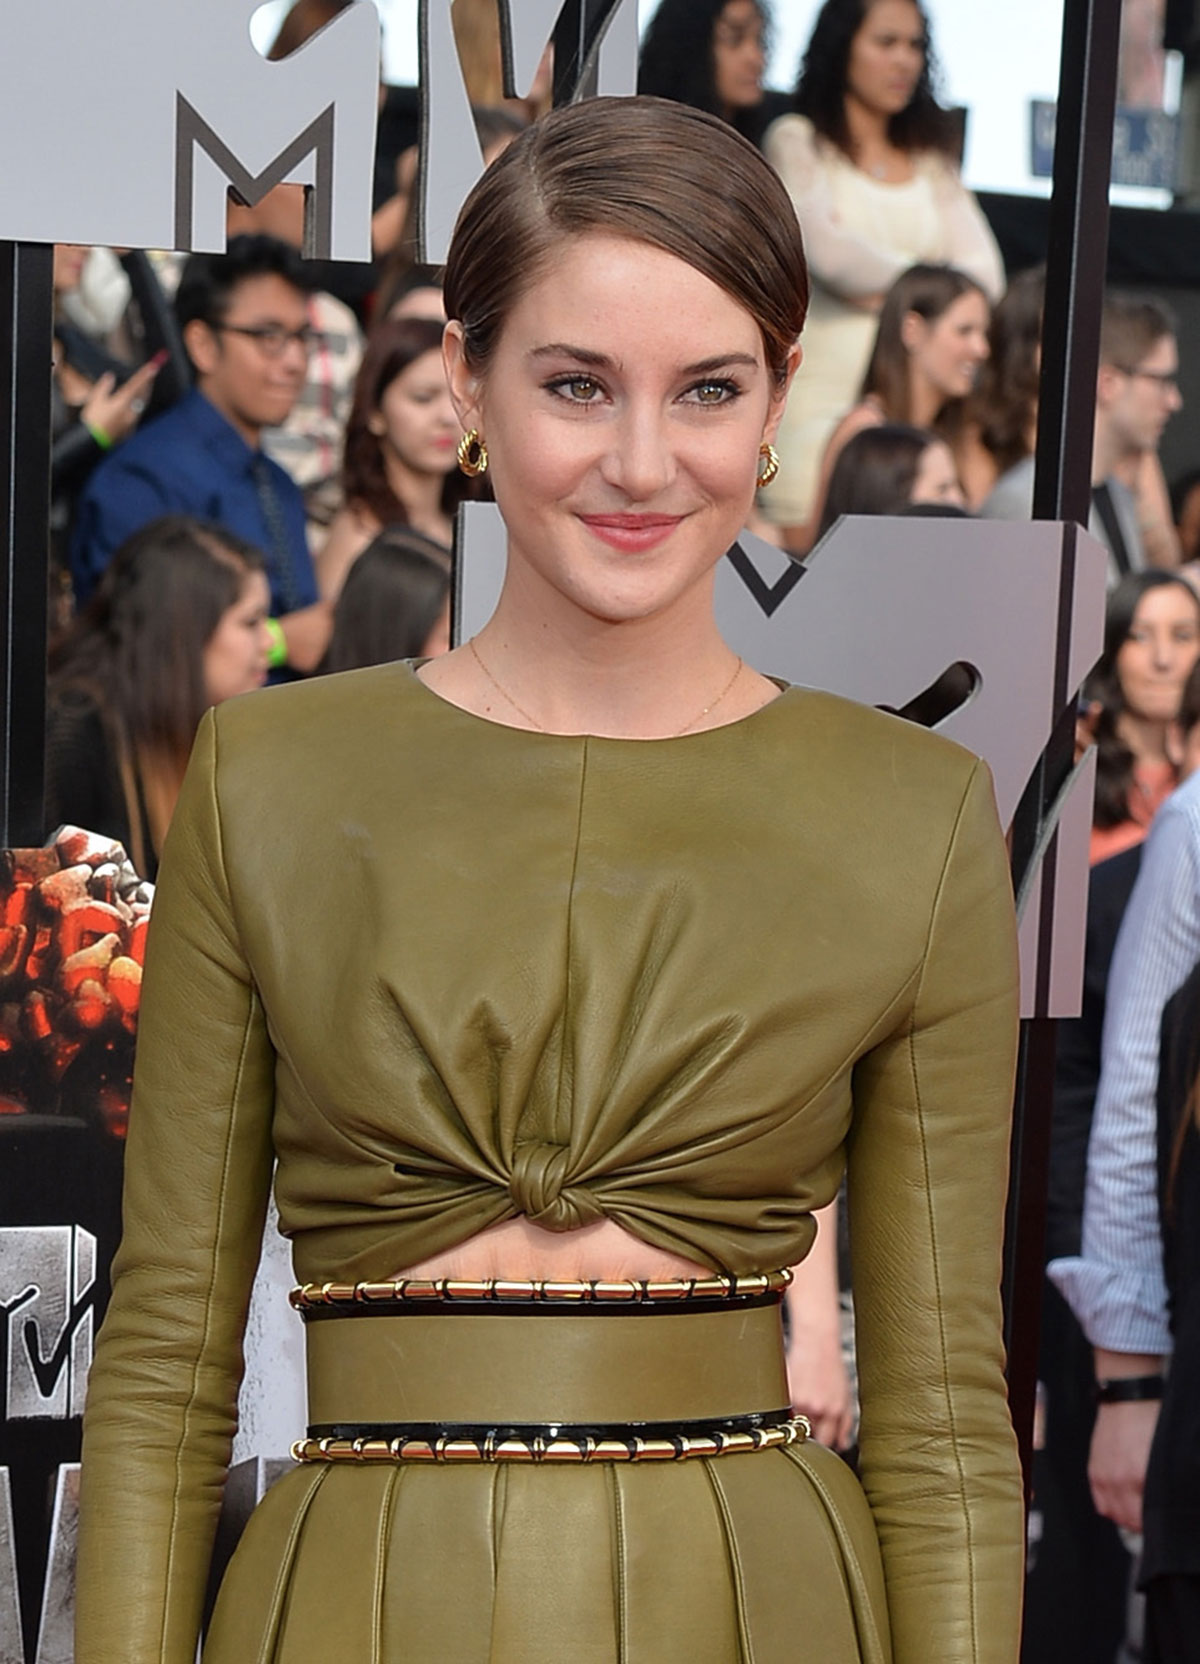 Shailene Woodley attends MTV Movie Awards